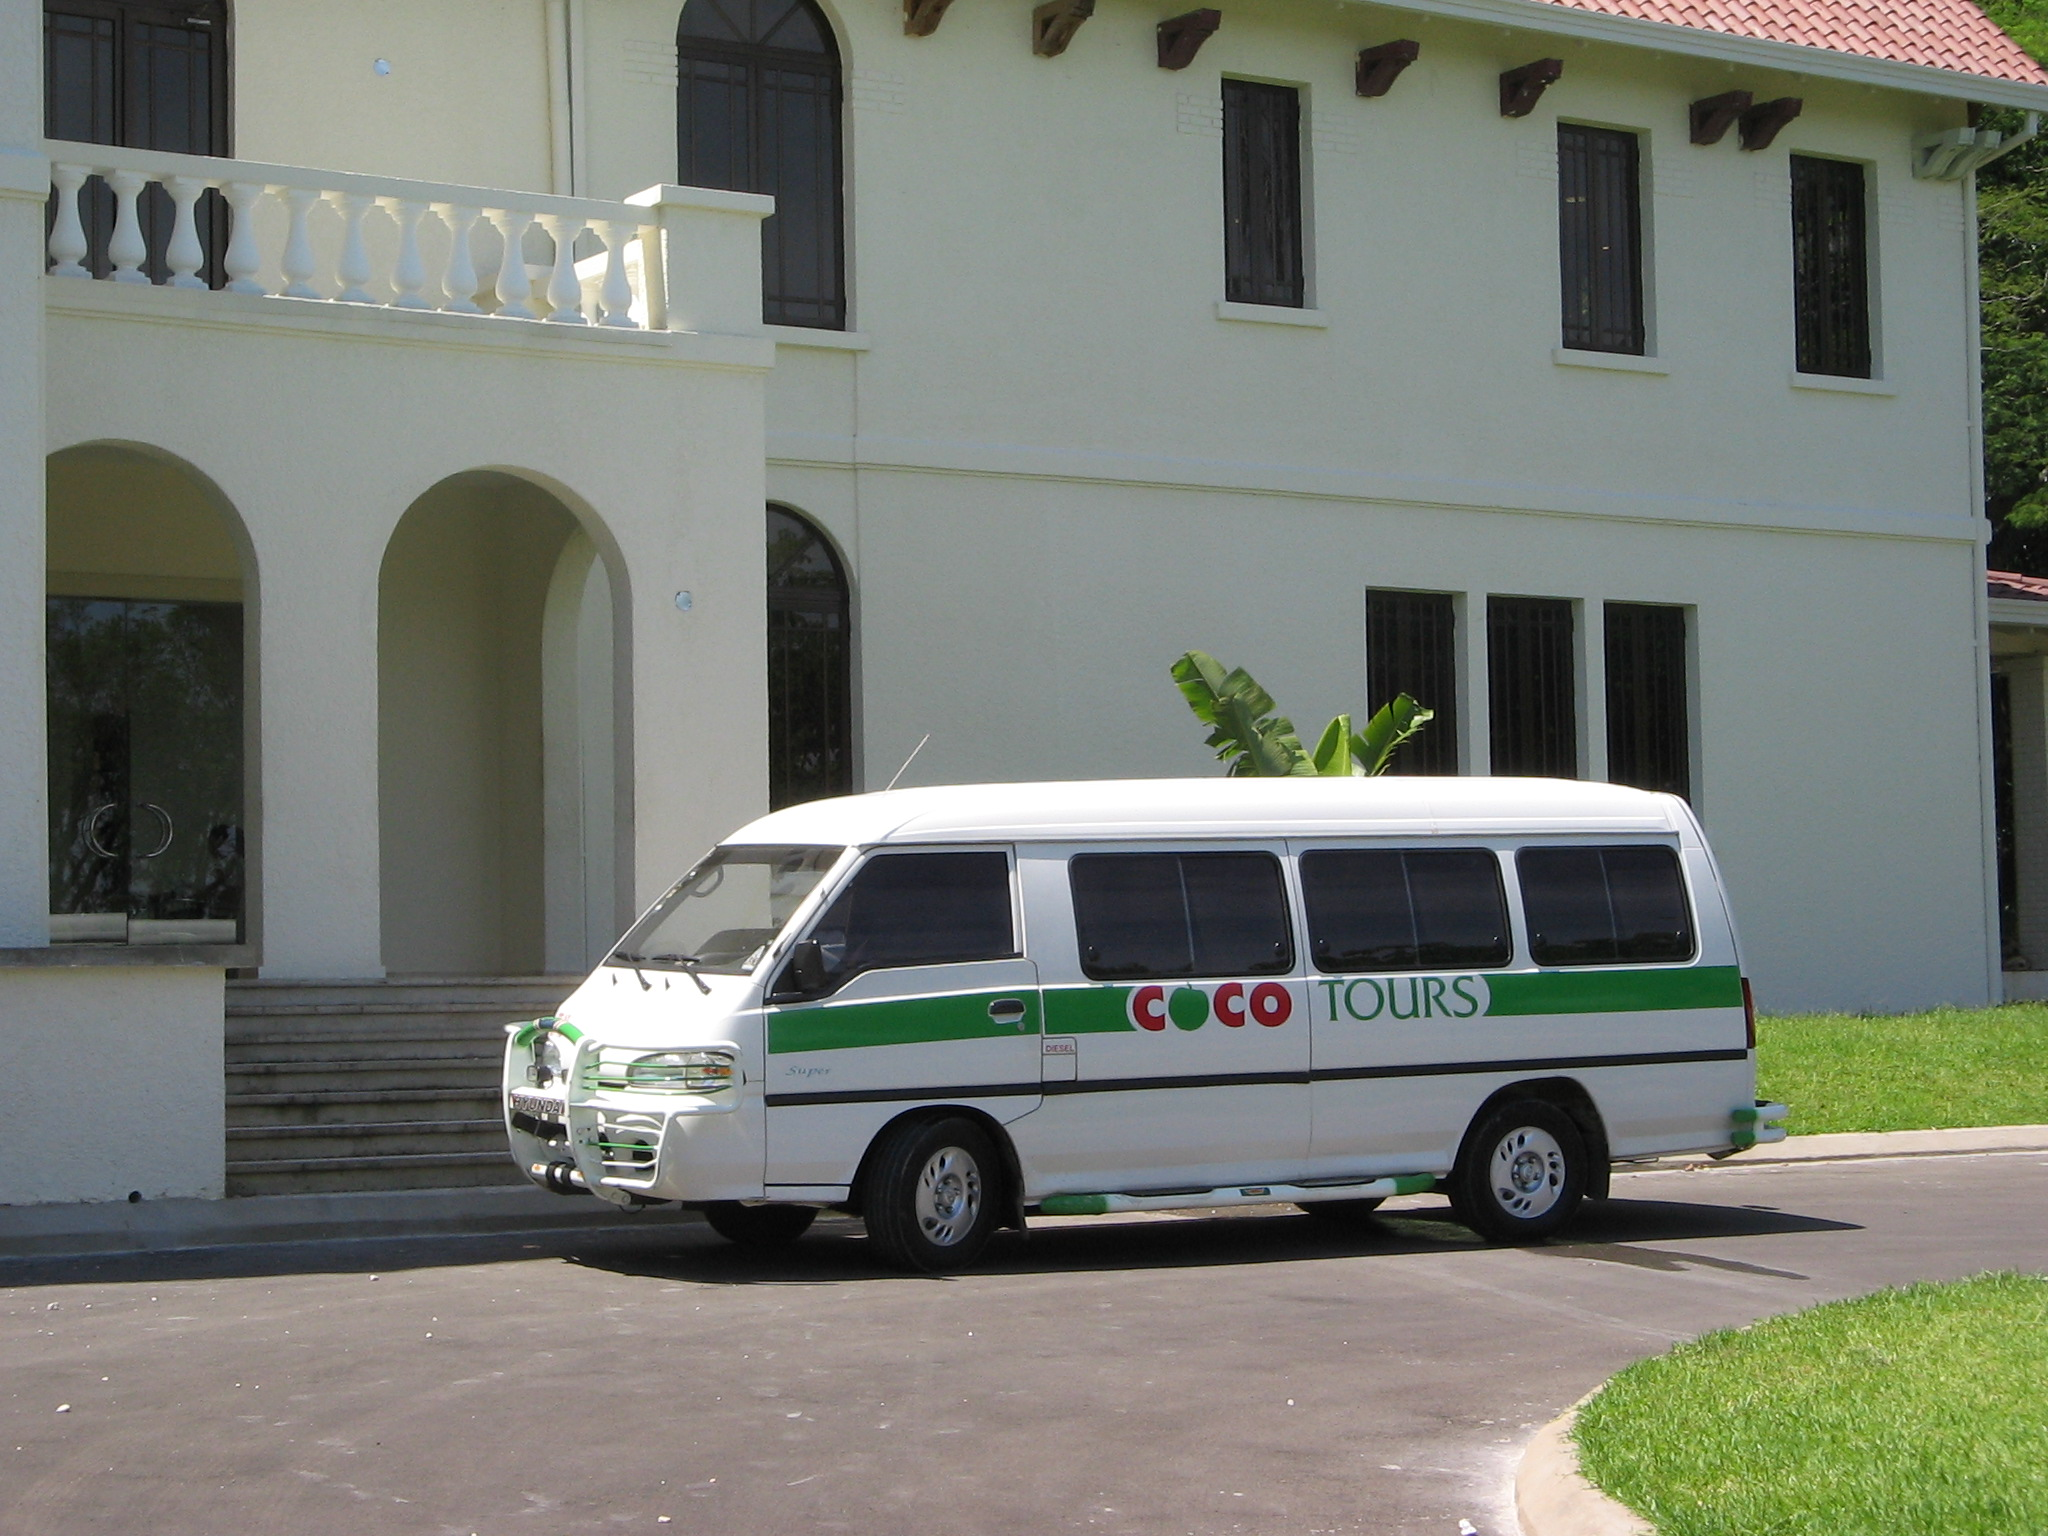 Most of our passengers on the route from Amber Cove to Amanera ride is our 6-seater vans